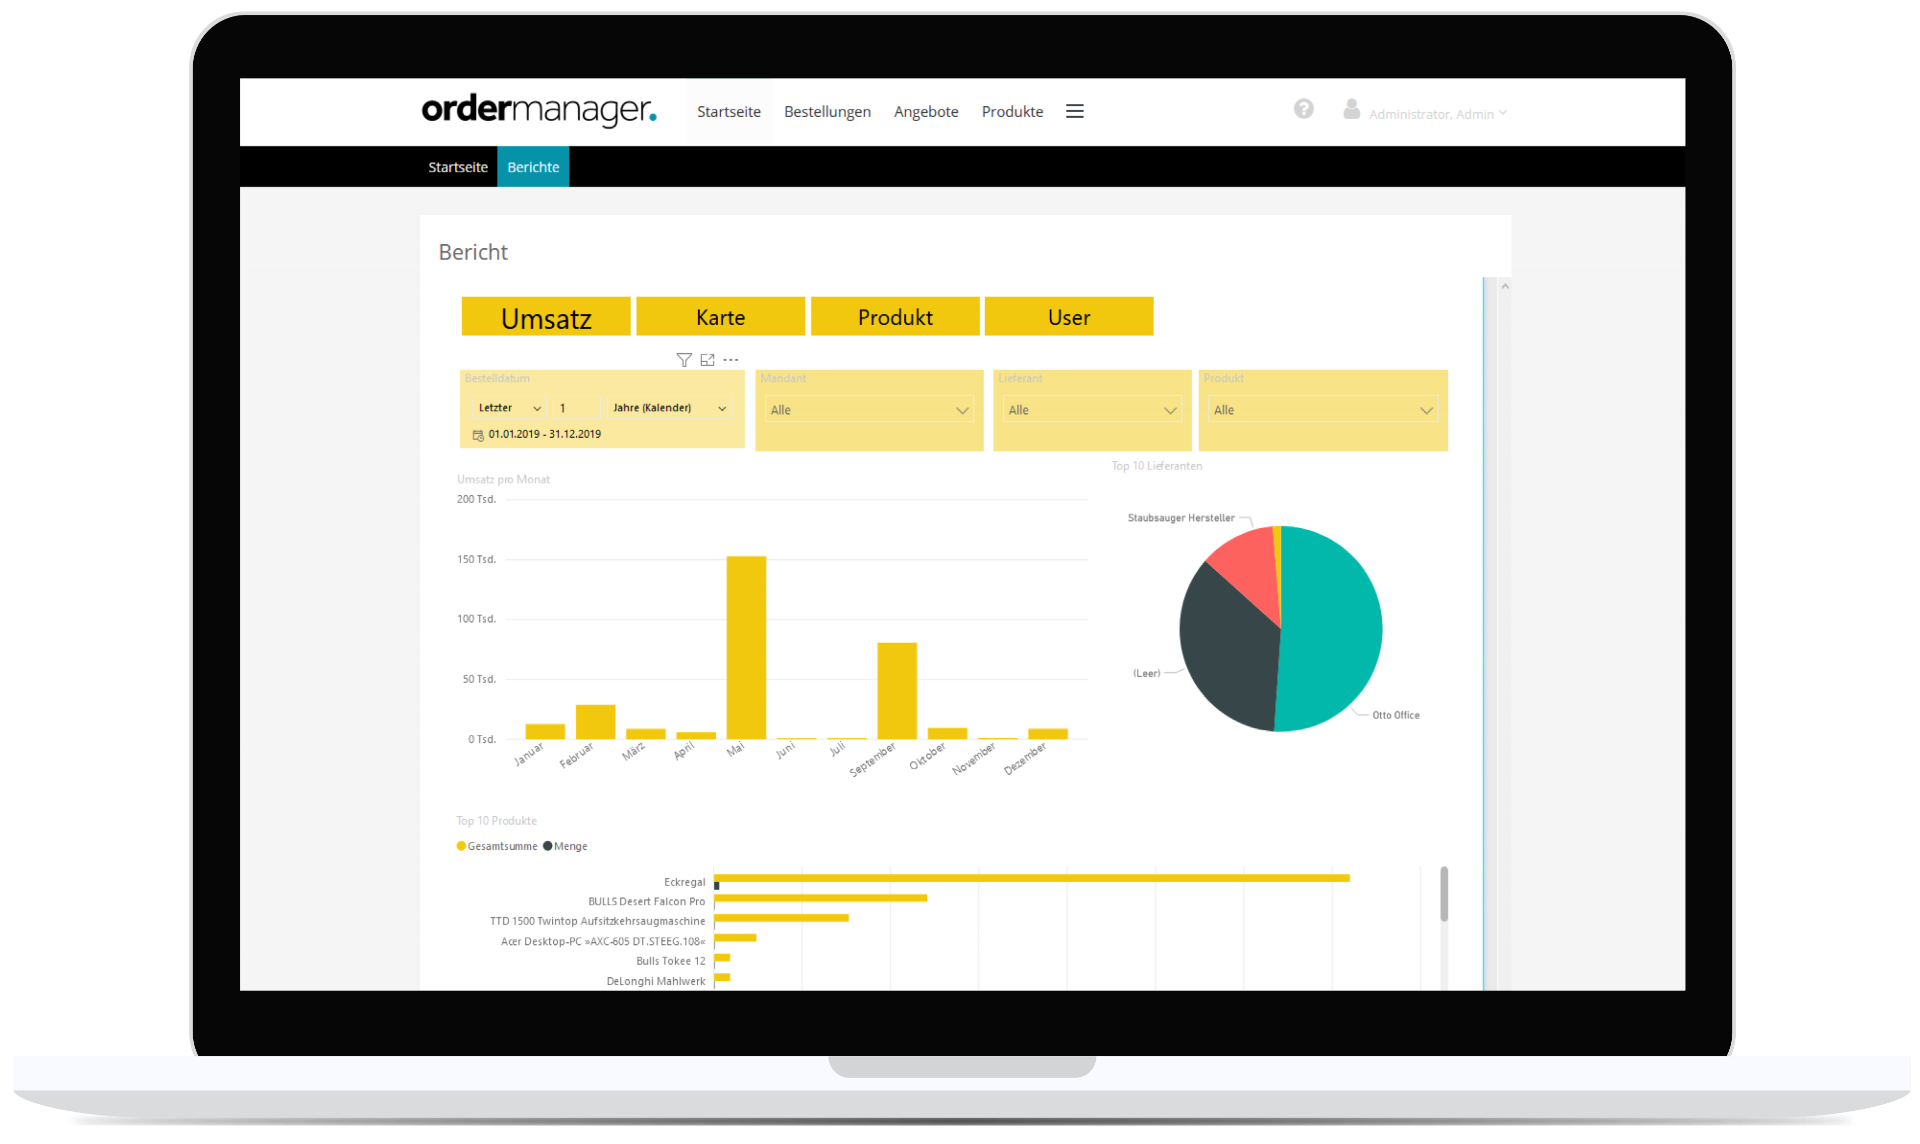 ordermanager-analyse-auswertung